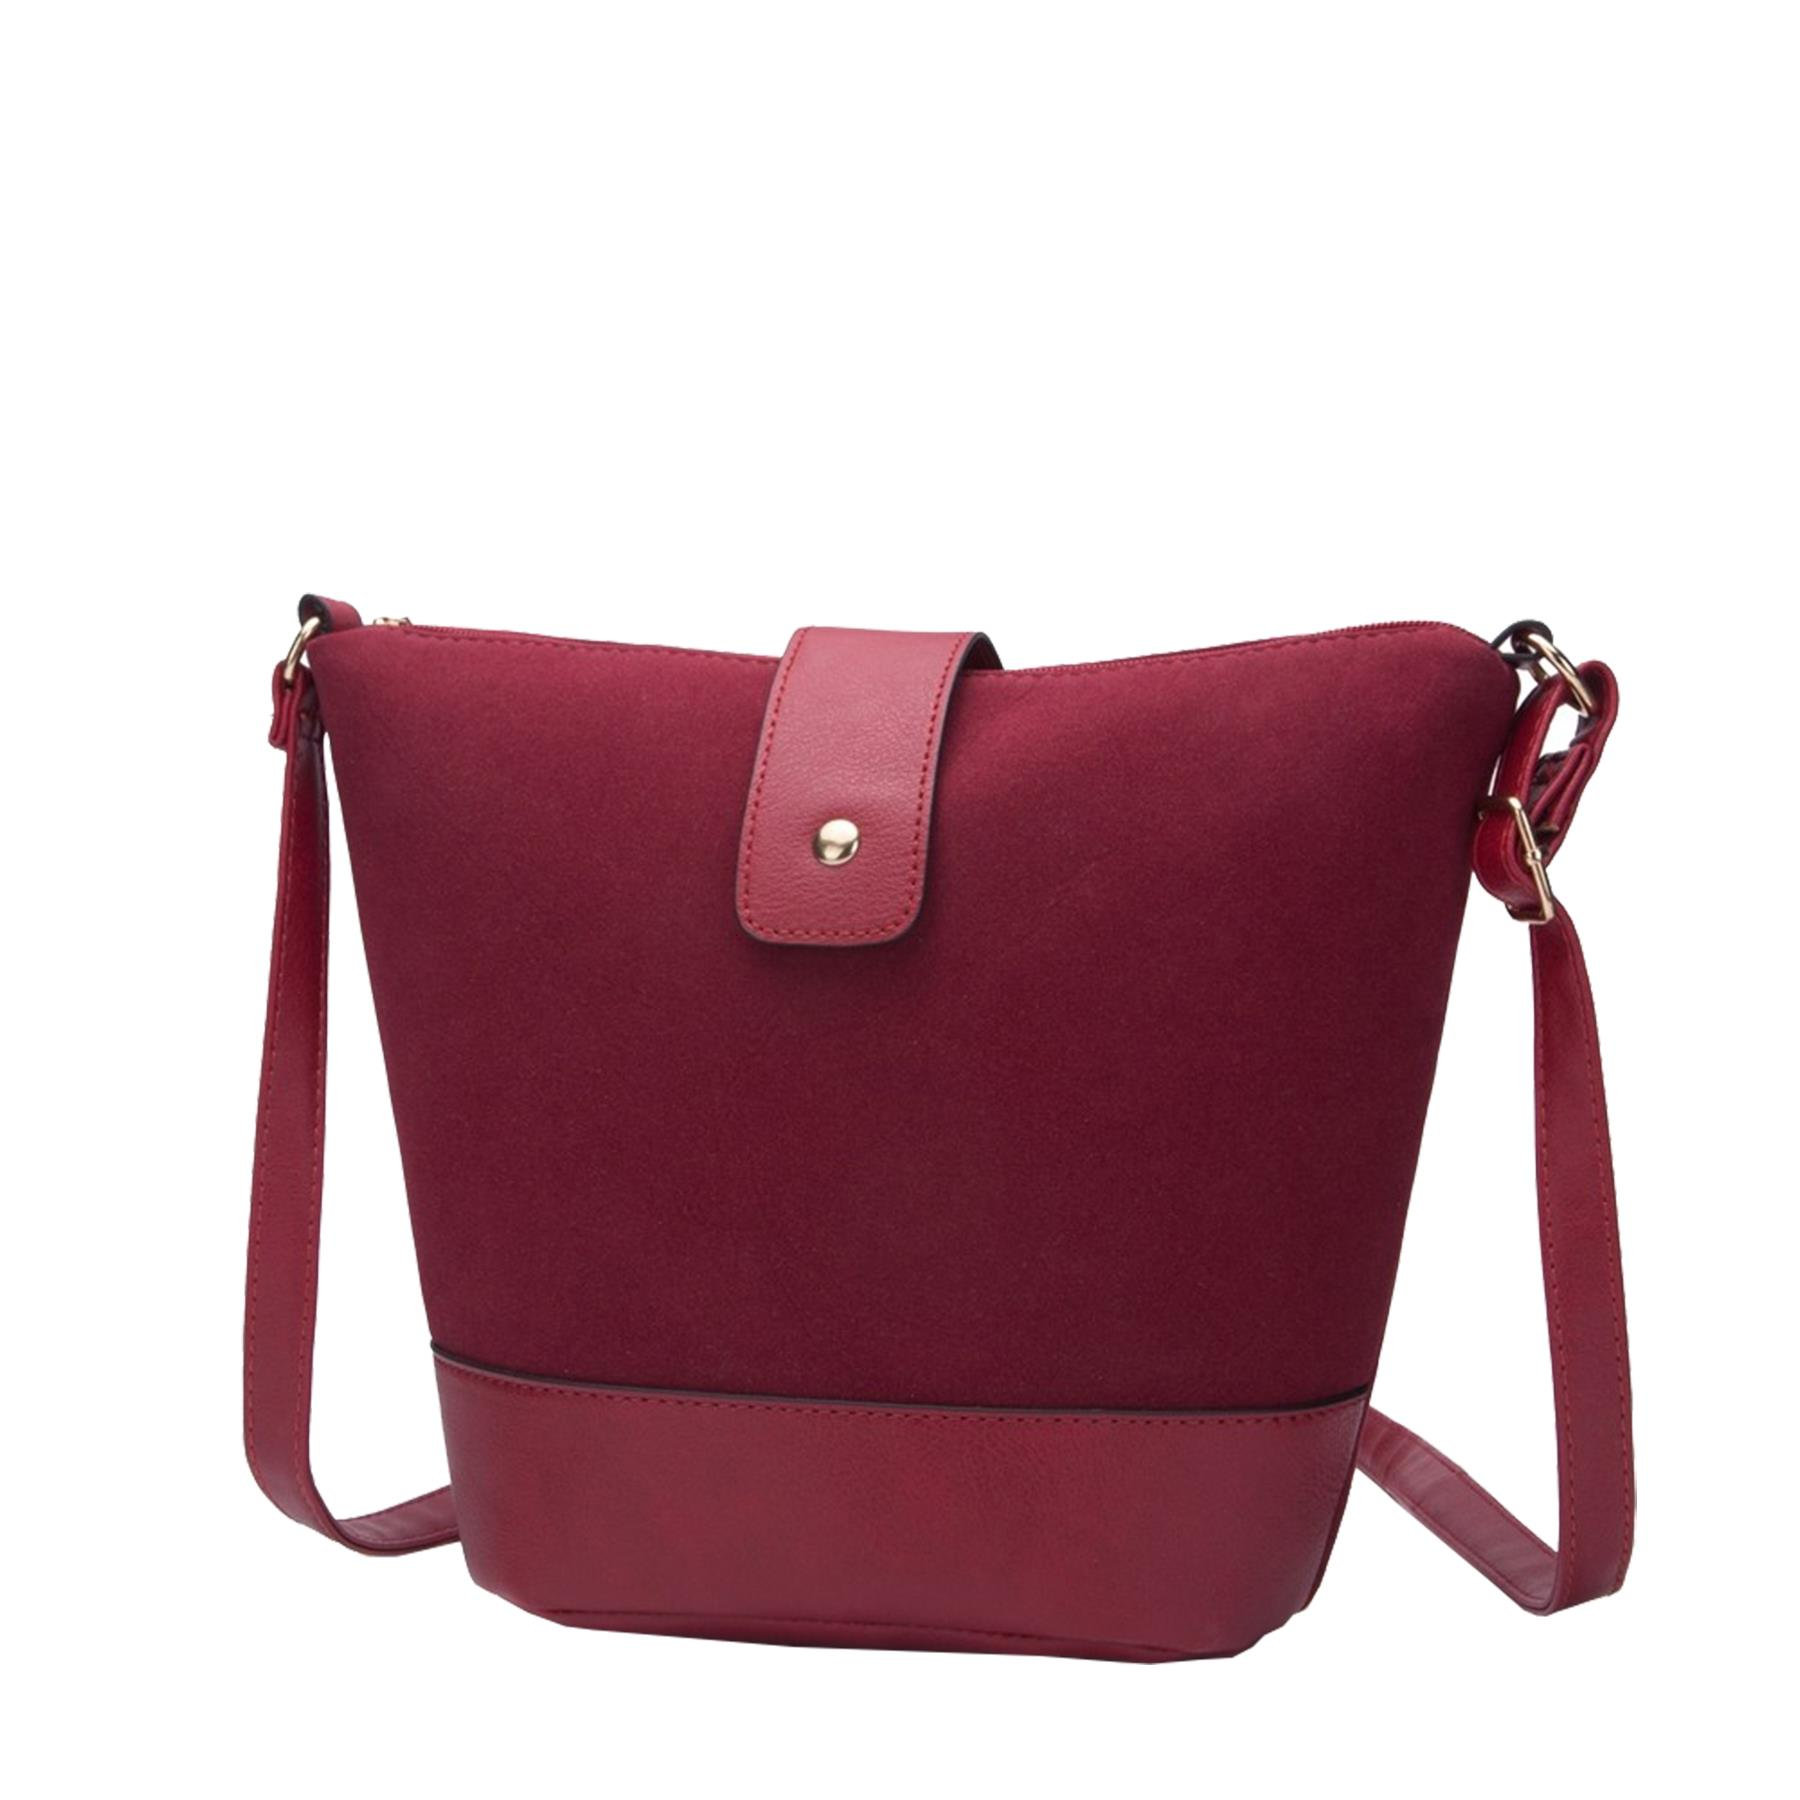 New-Ladies-Two-Toned-Faux-Leather-Fashion-Shoulder-Cross-Body-Bag thumbnail 6